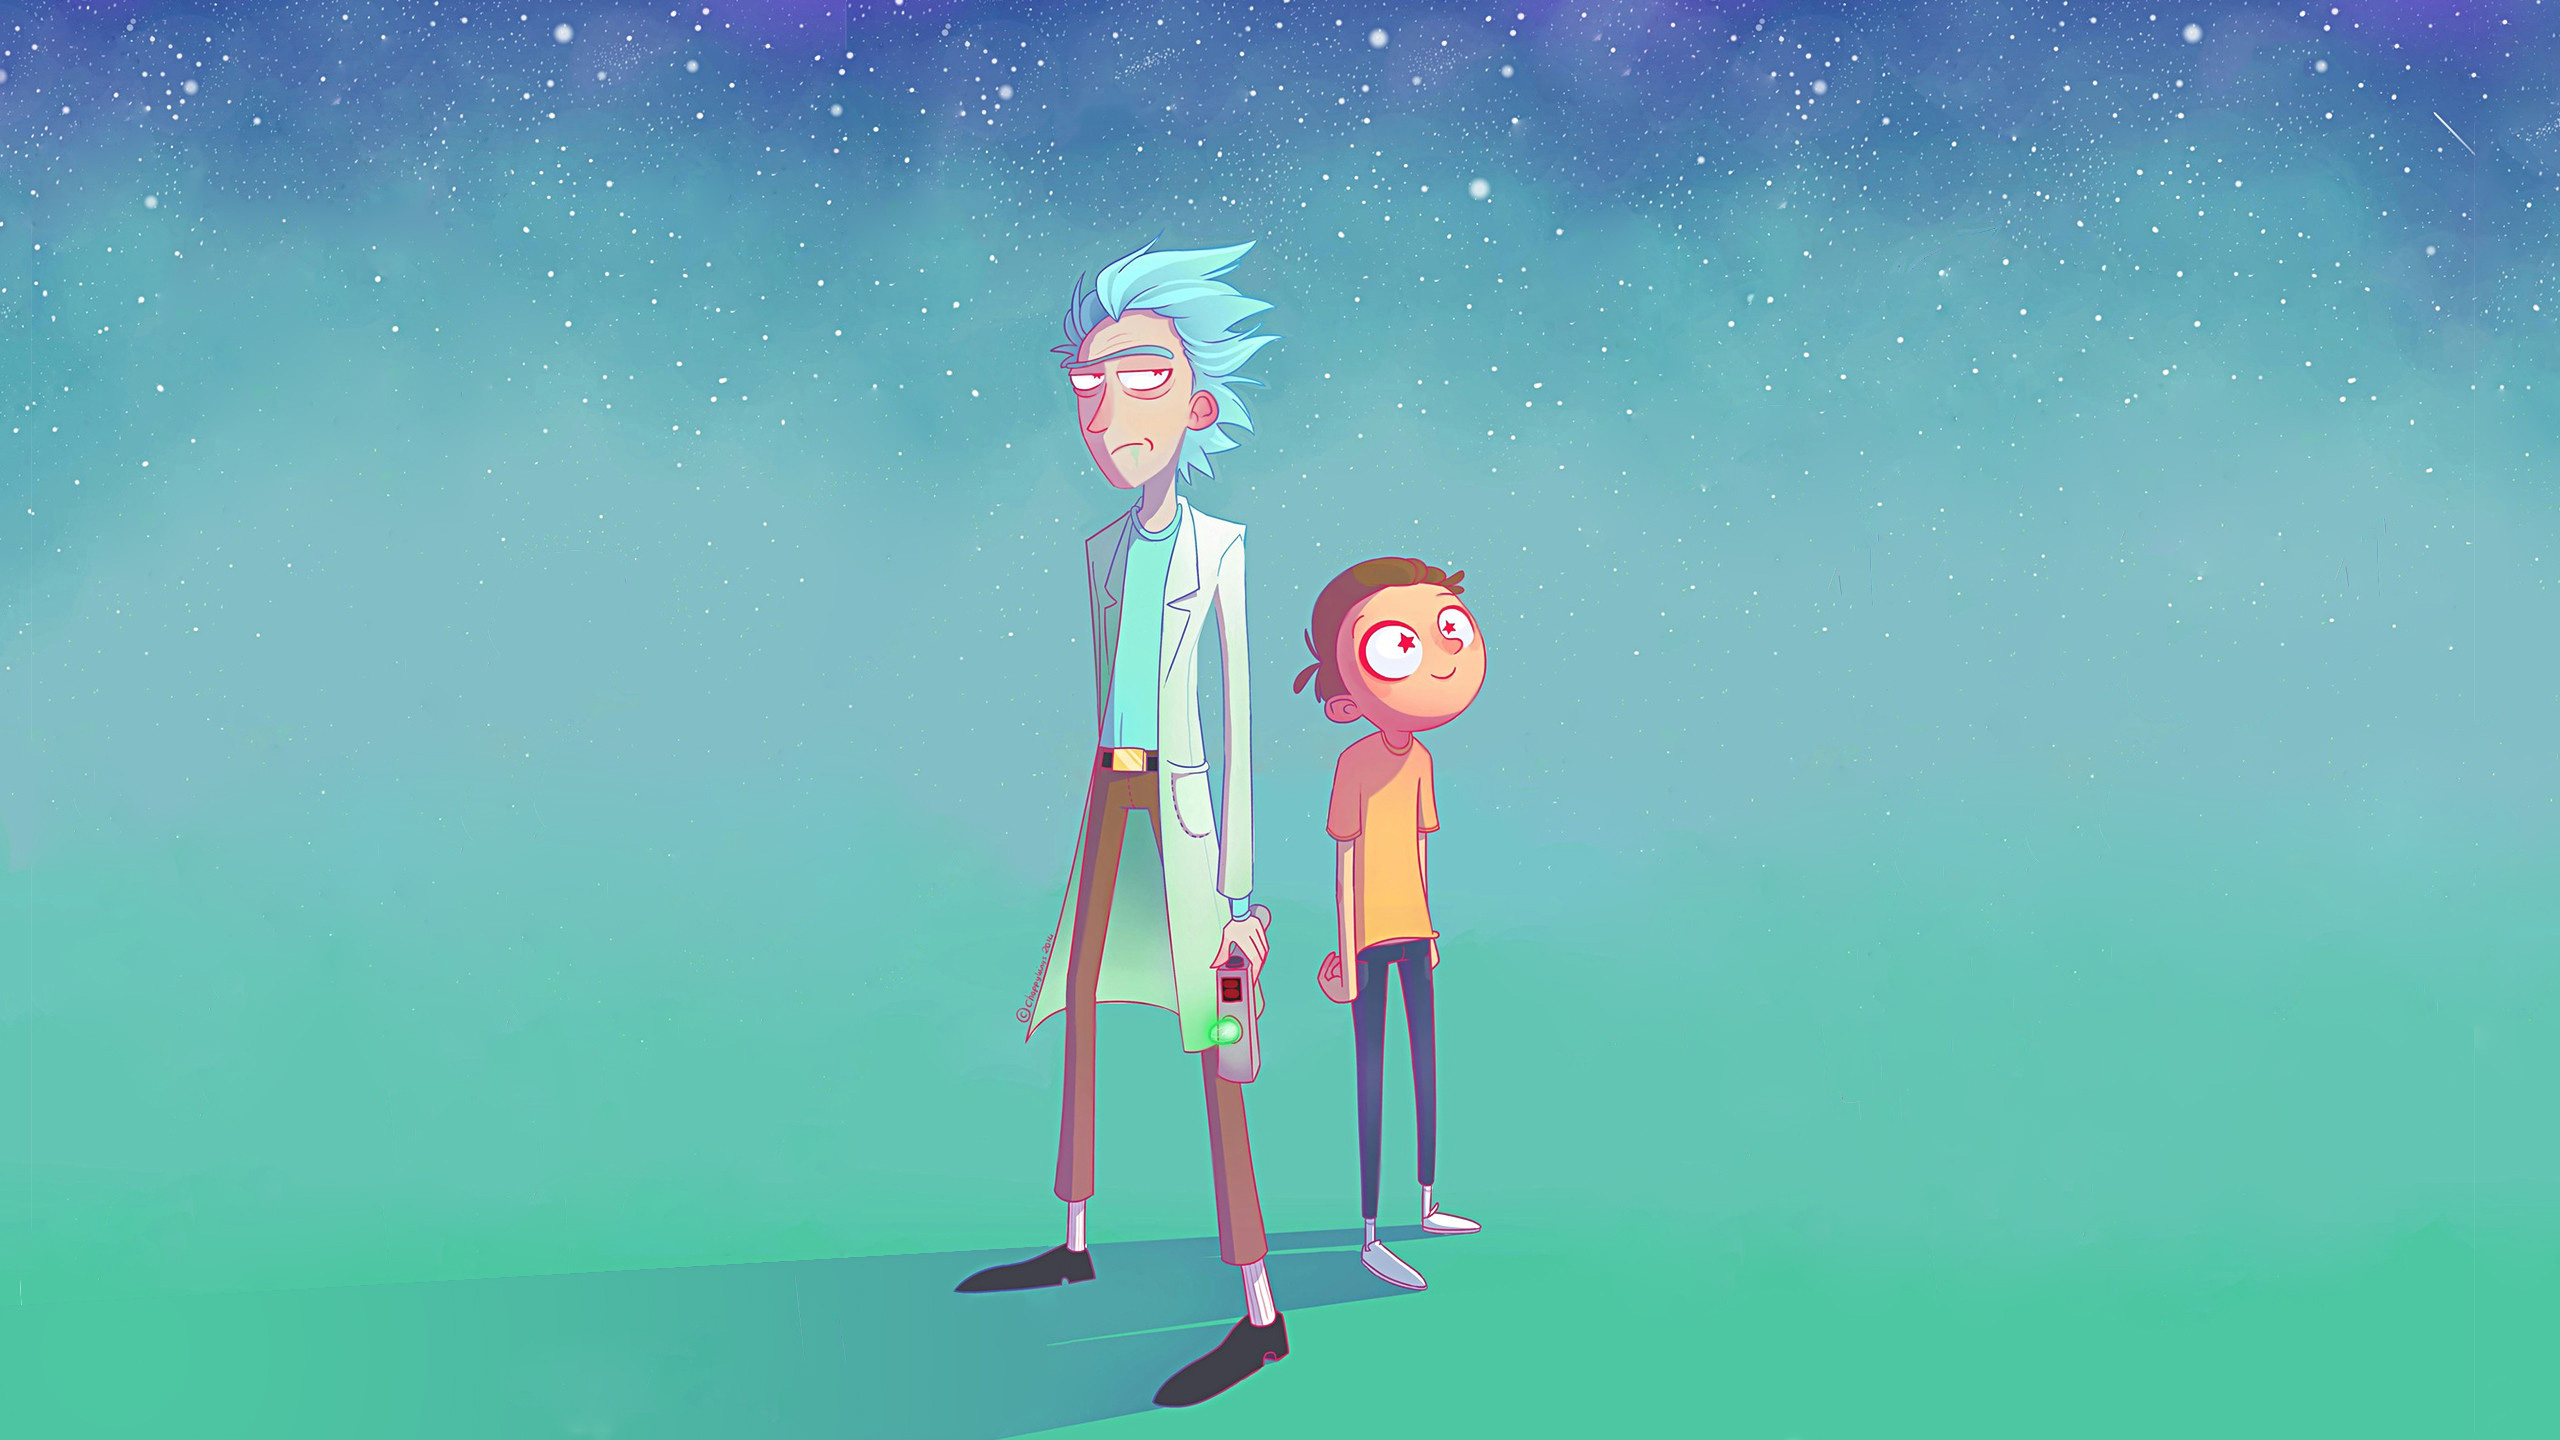 2560x1080 rick and morty artwork 2560x1080 resolution hd 4k wallpapers images backgrounds - Rick and morty download ...